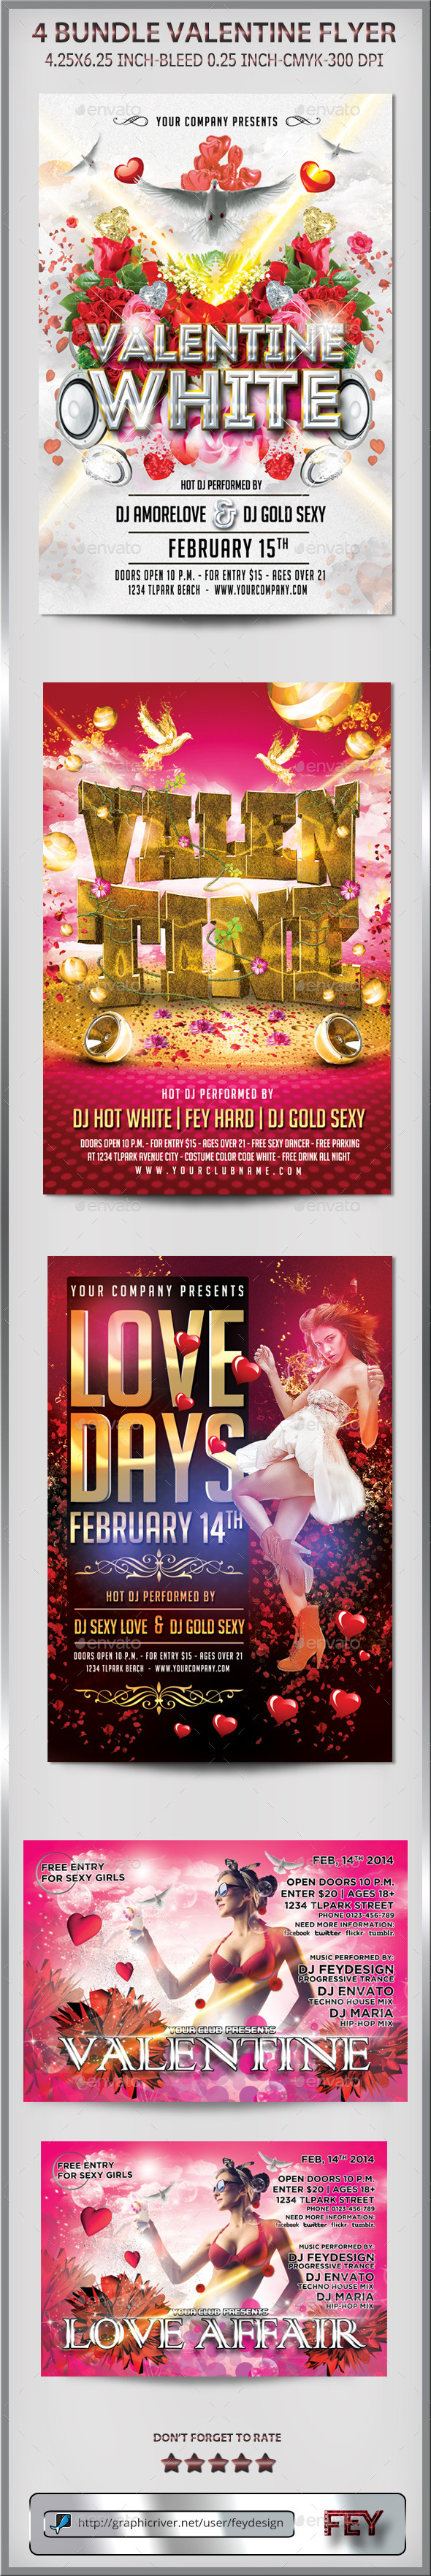 4 Bundle Valentine Party Flyer - Events Flyers